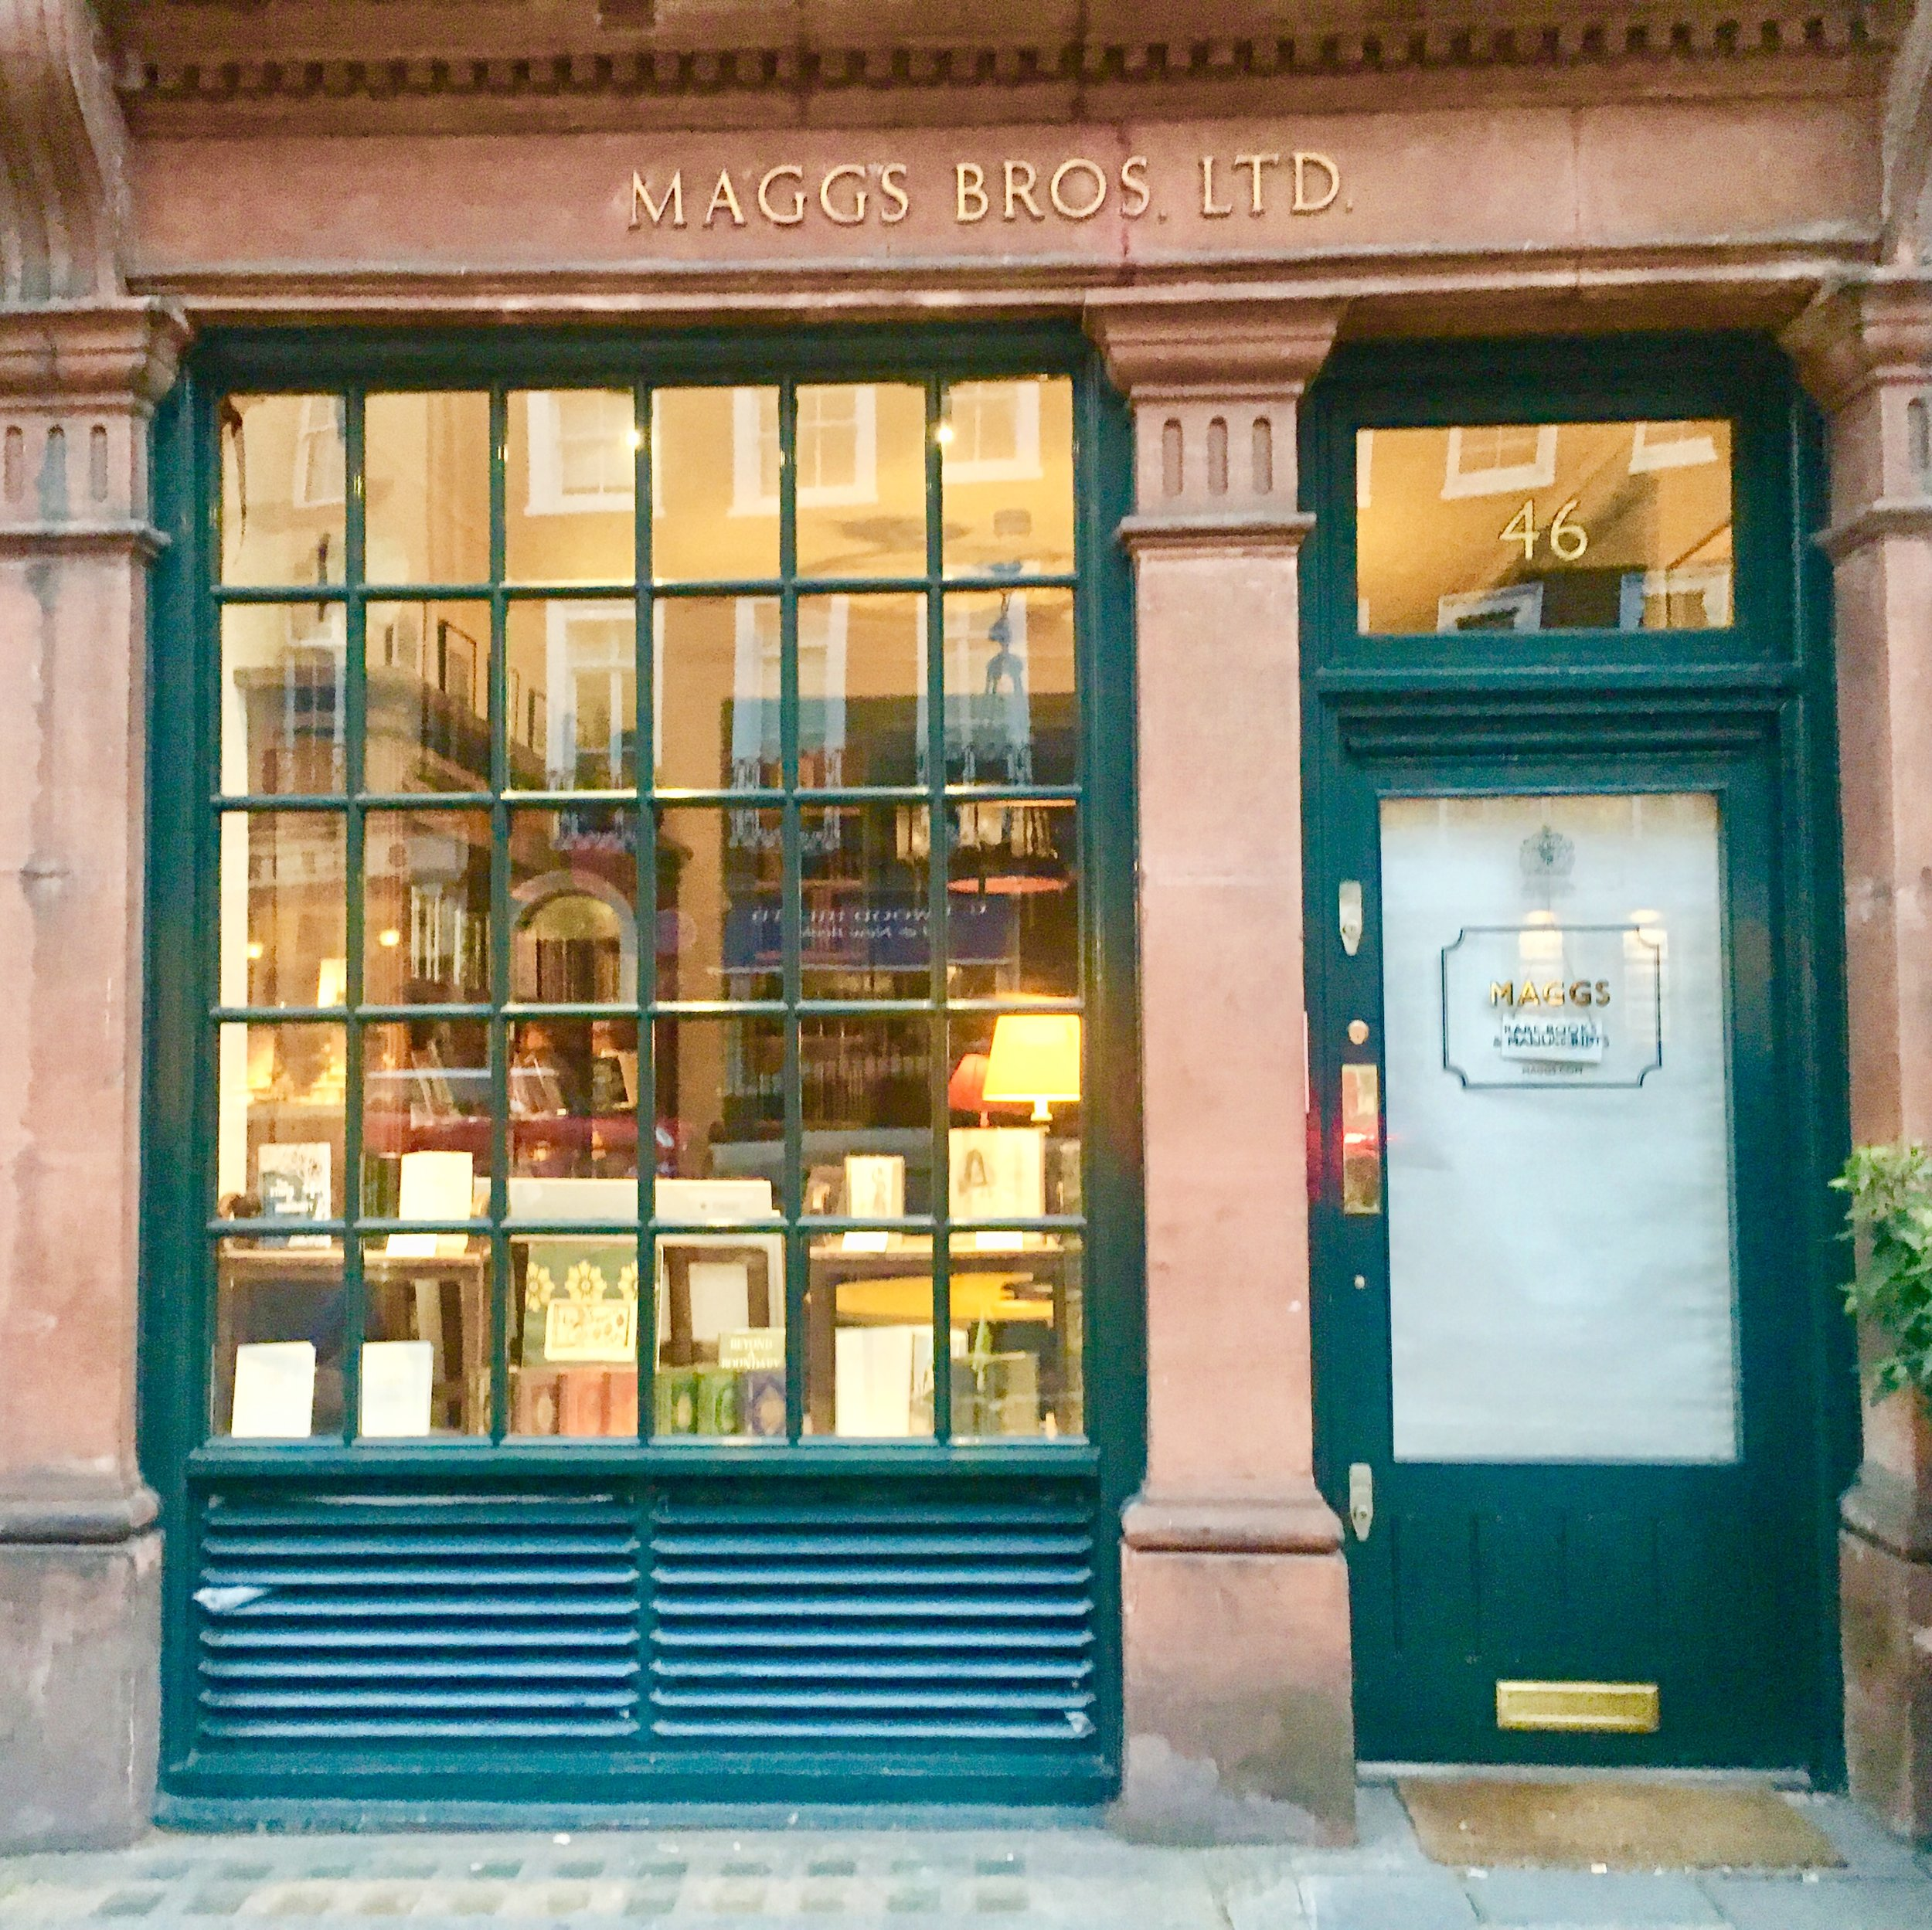 Maggs Bros. Ltd: Rare books and Manuscripts  offers rare books and manuscripts from around the world in every topic imaginable. With two elegant destinations in Mayfair and Covent Gardens, it has a stellar reputation in the antiquarian world since 1853.